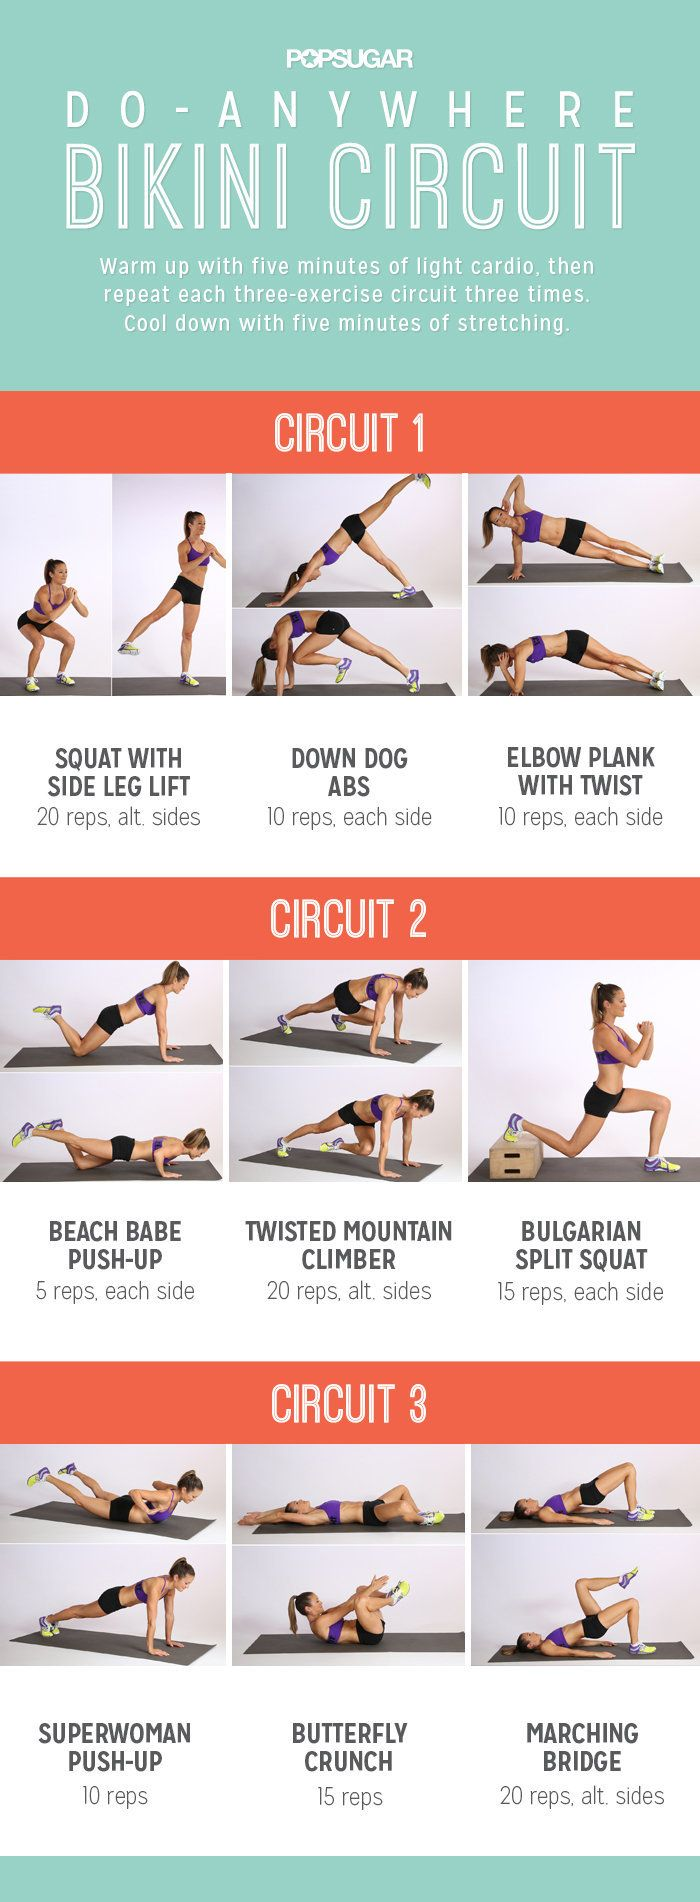 Lack of a gym membership is no longer an excuse for skipping workouts. Instead of relying on equipment, let your body be the gym. These 13 bodyweight workouts are effective, easy to follow, and plenty of fun like this Do-Anywhere Bikini Circuit